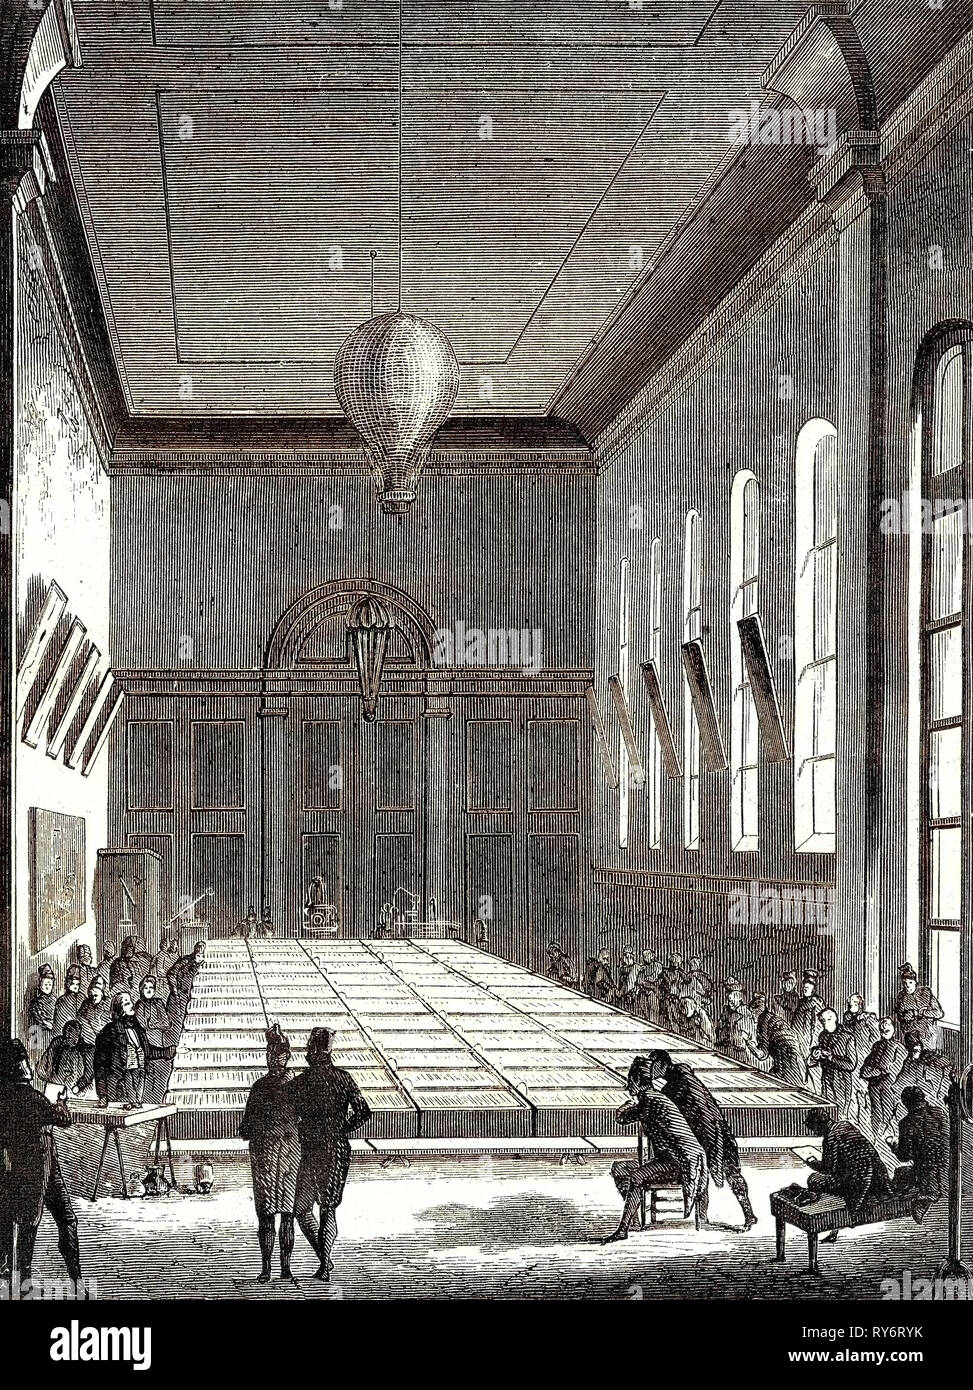 The Large Battery of the École Polytechnique Built in 1813 on the Request of Napoleon I - Stock Image